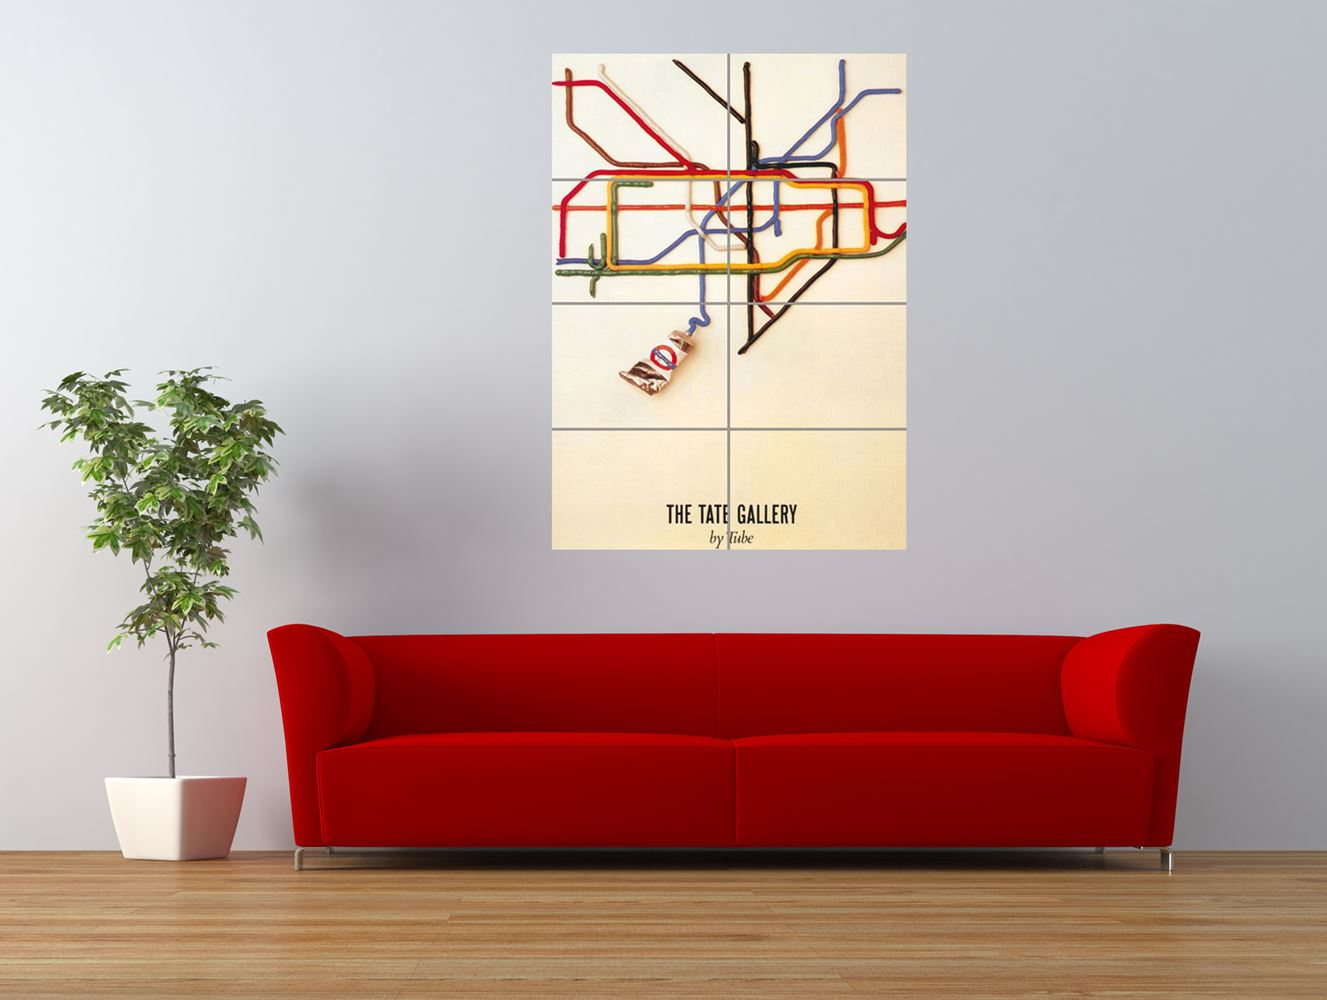 london underground tate gallery paint tube giant art print panel poster nor0287 ebay. Black Bedroom Furniture Sets. Home Design Ideas